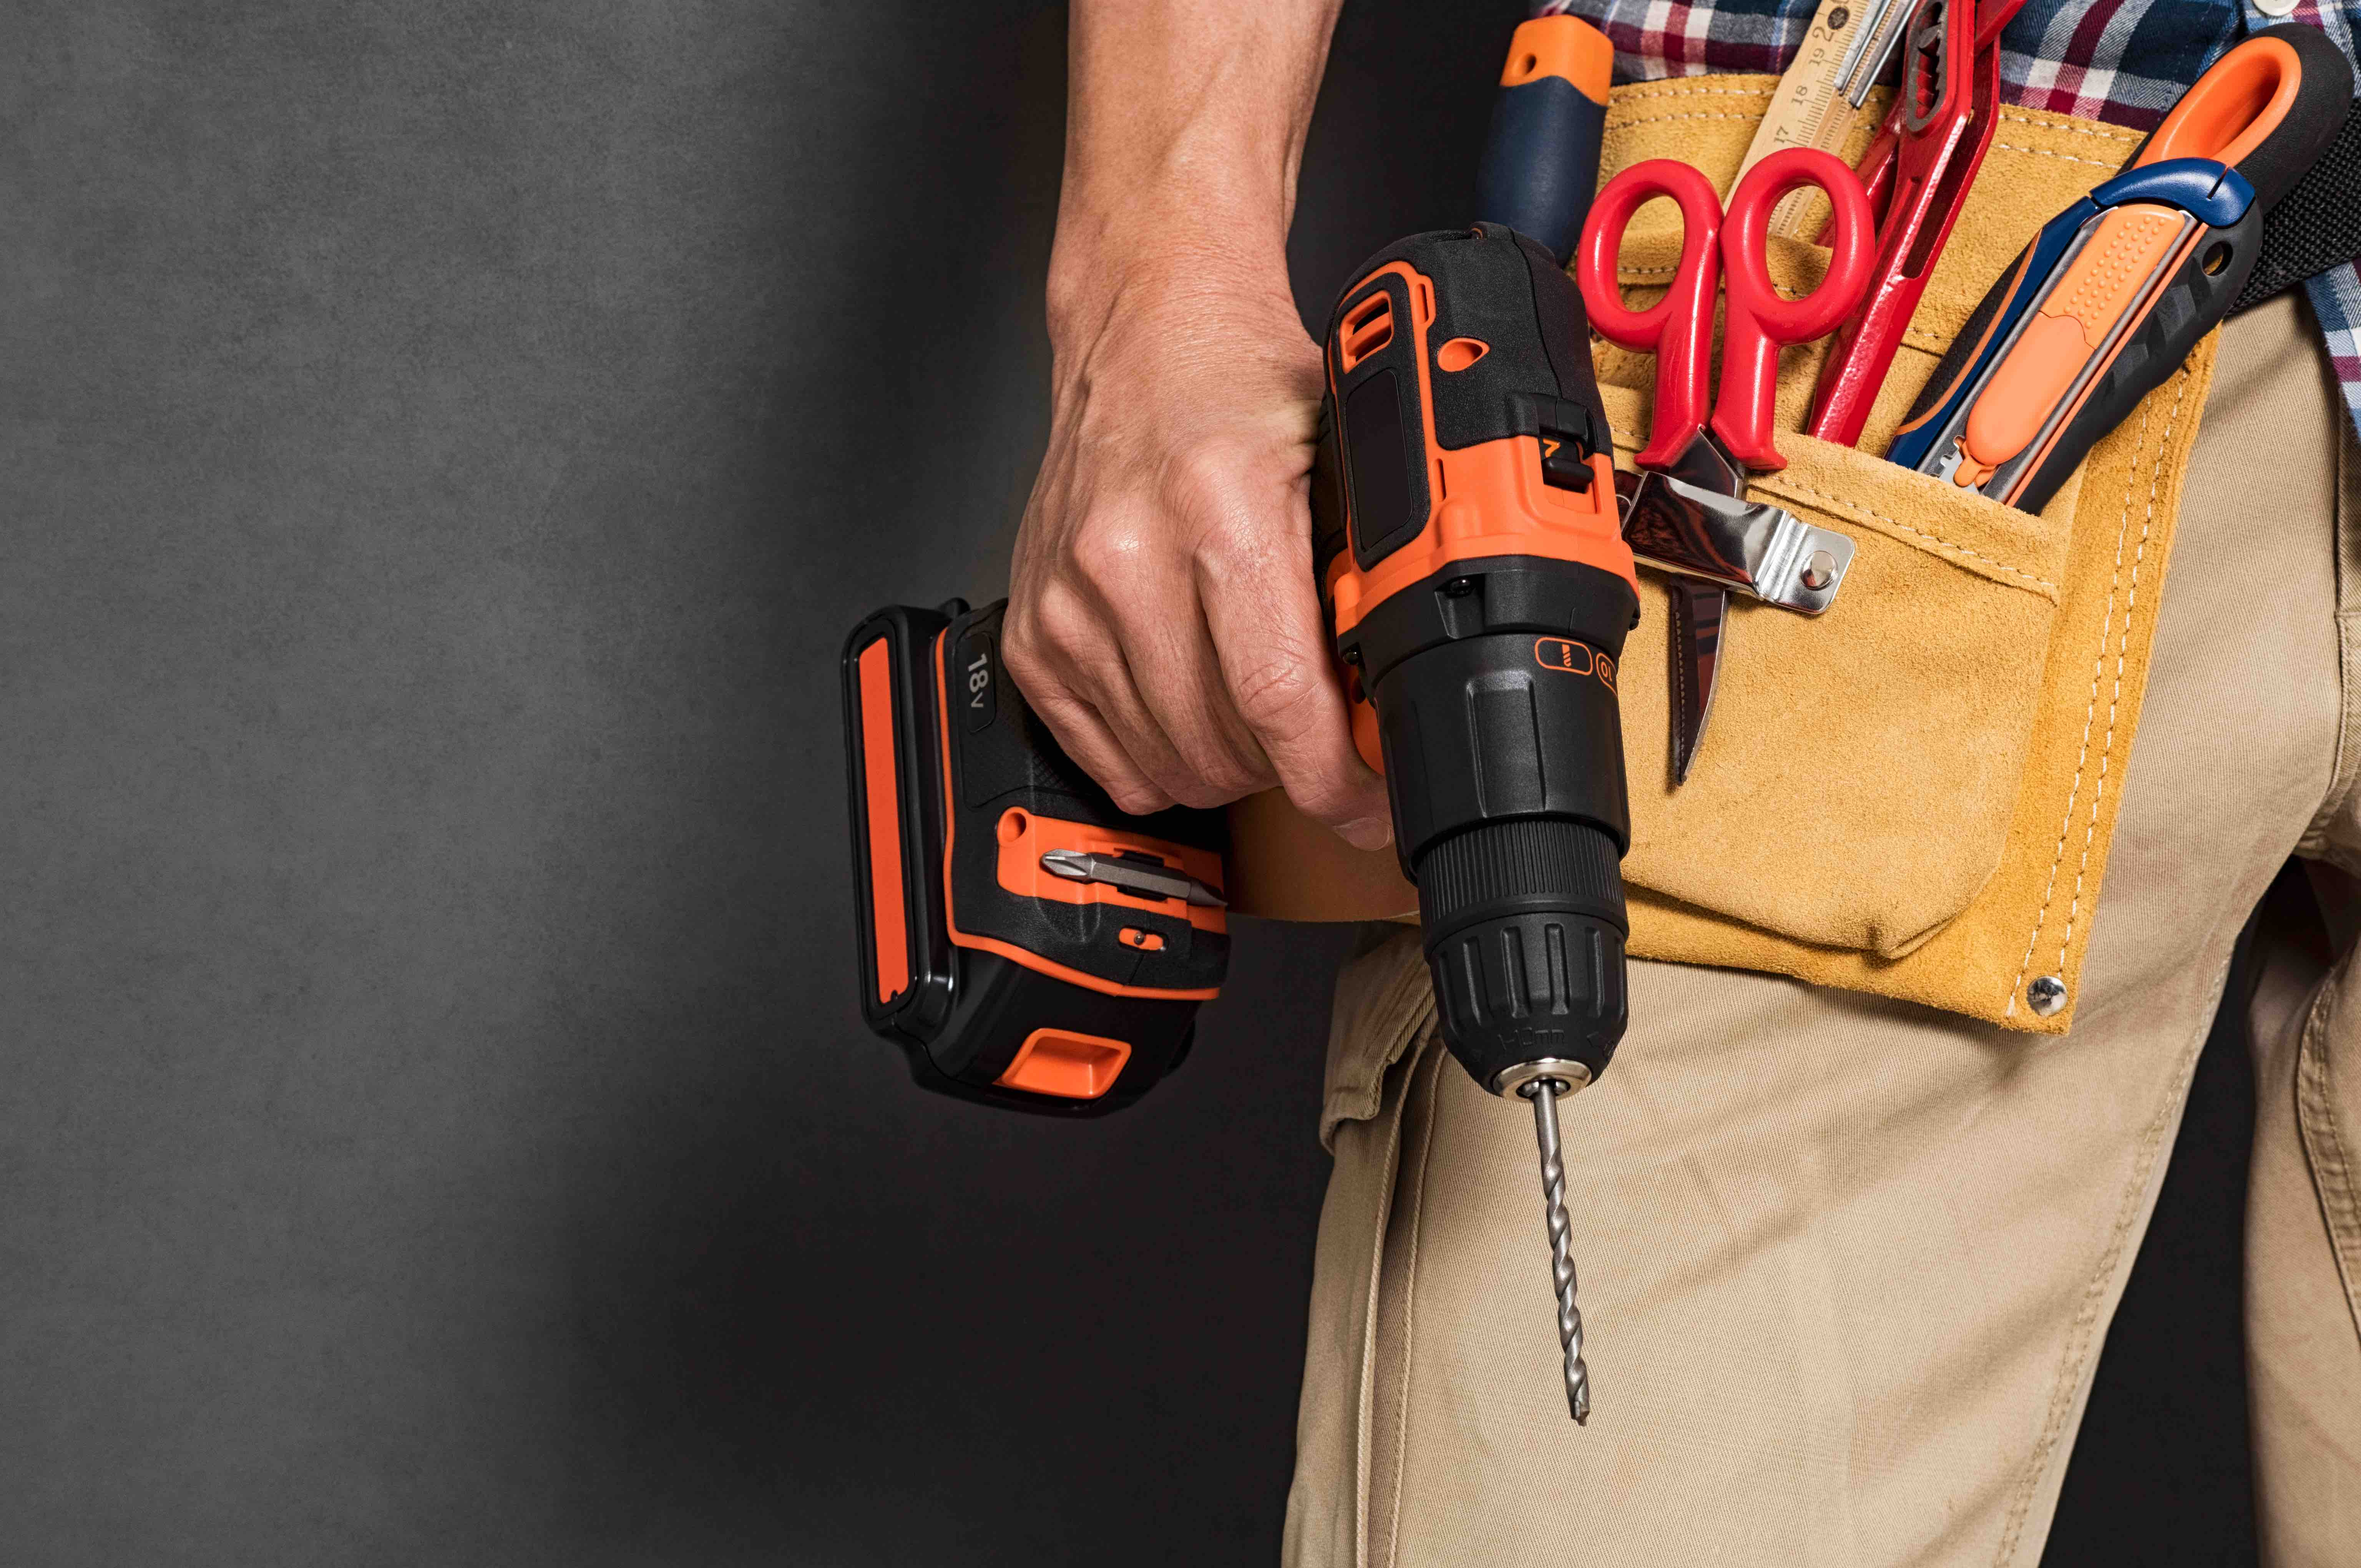 handyman contractor with tool belt holding electric drill for construction